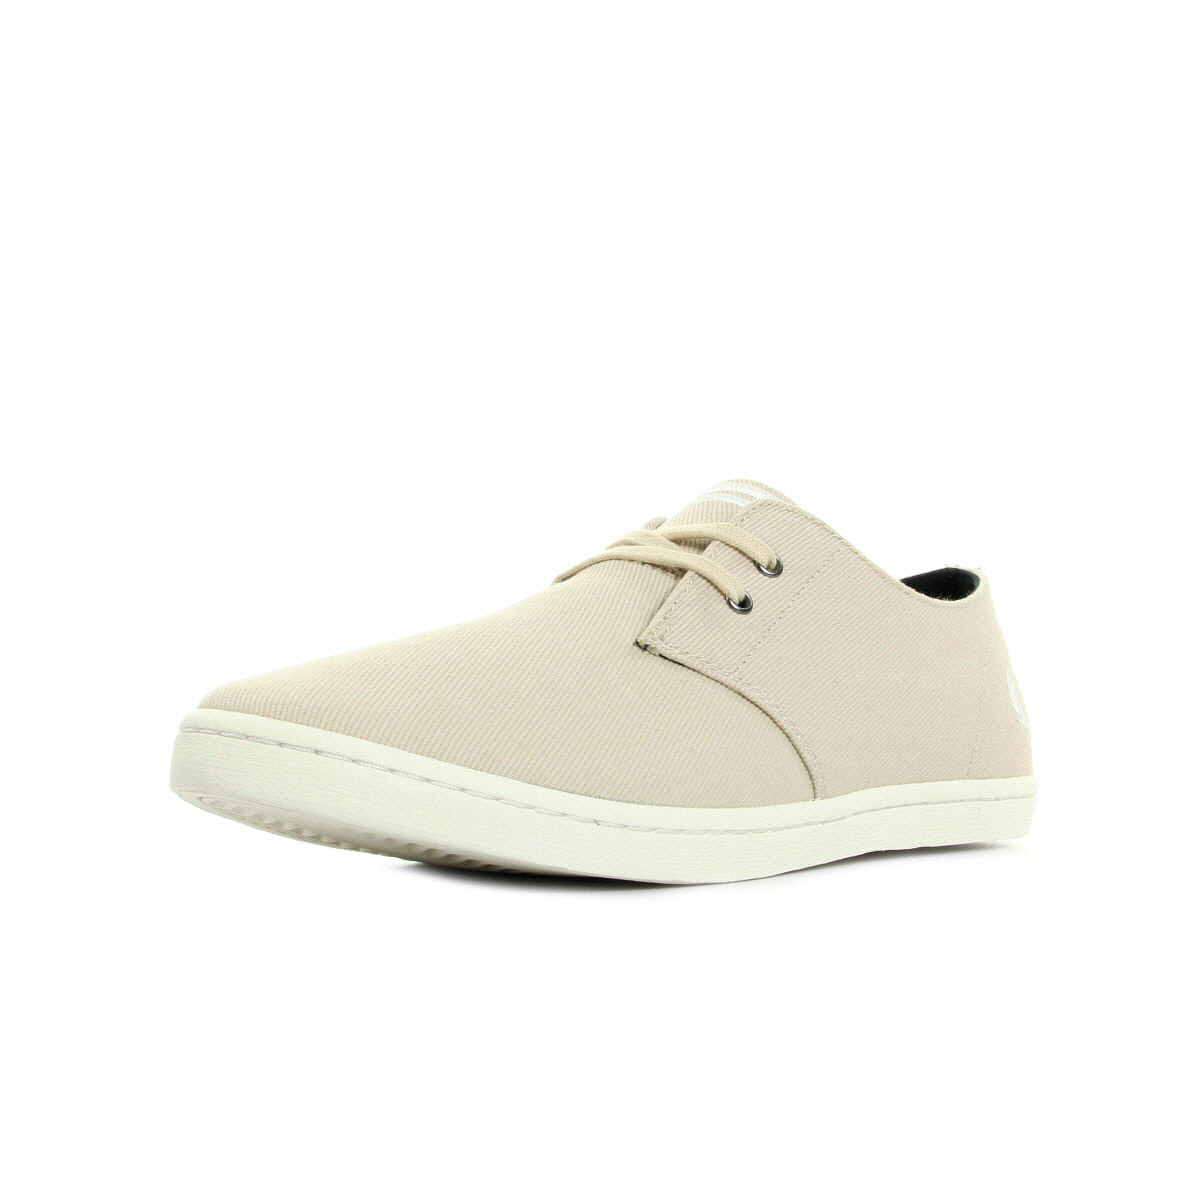 Brun Fred Perry Chaussures BYRON LOW TWO TONE TWILL Fred Perry soldes zapattu Clarks Elásticos - Negro wg39a85